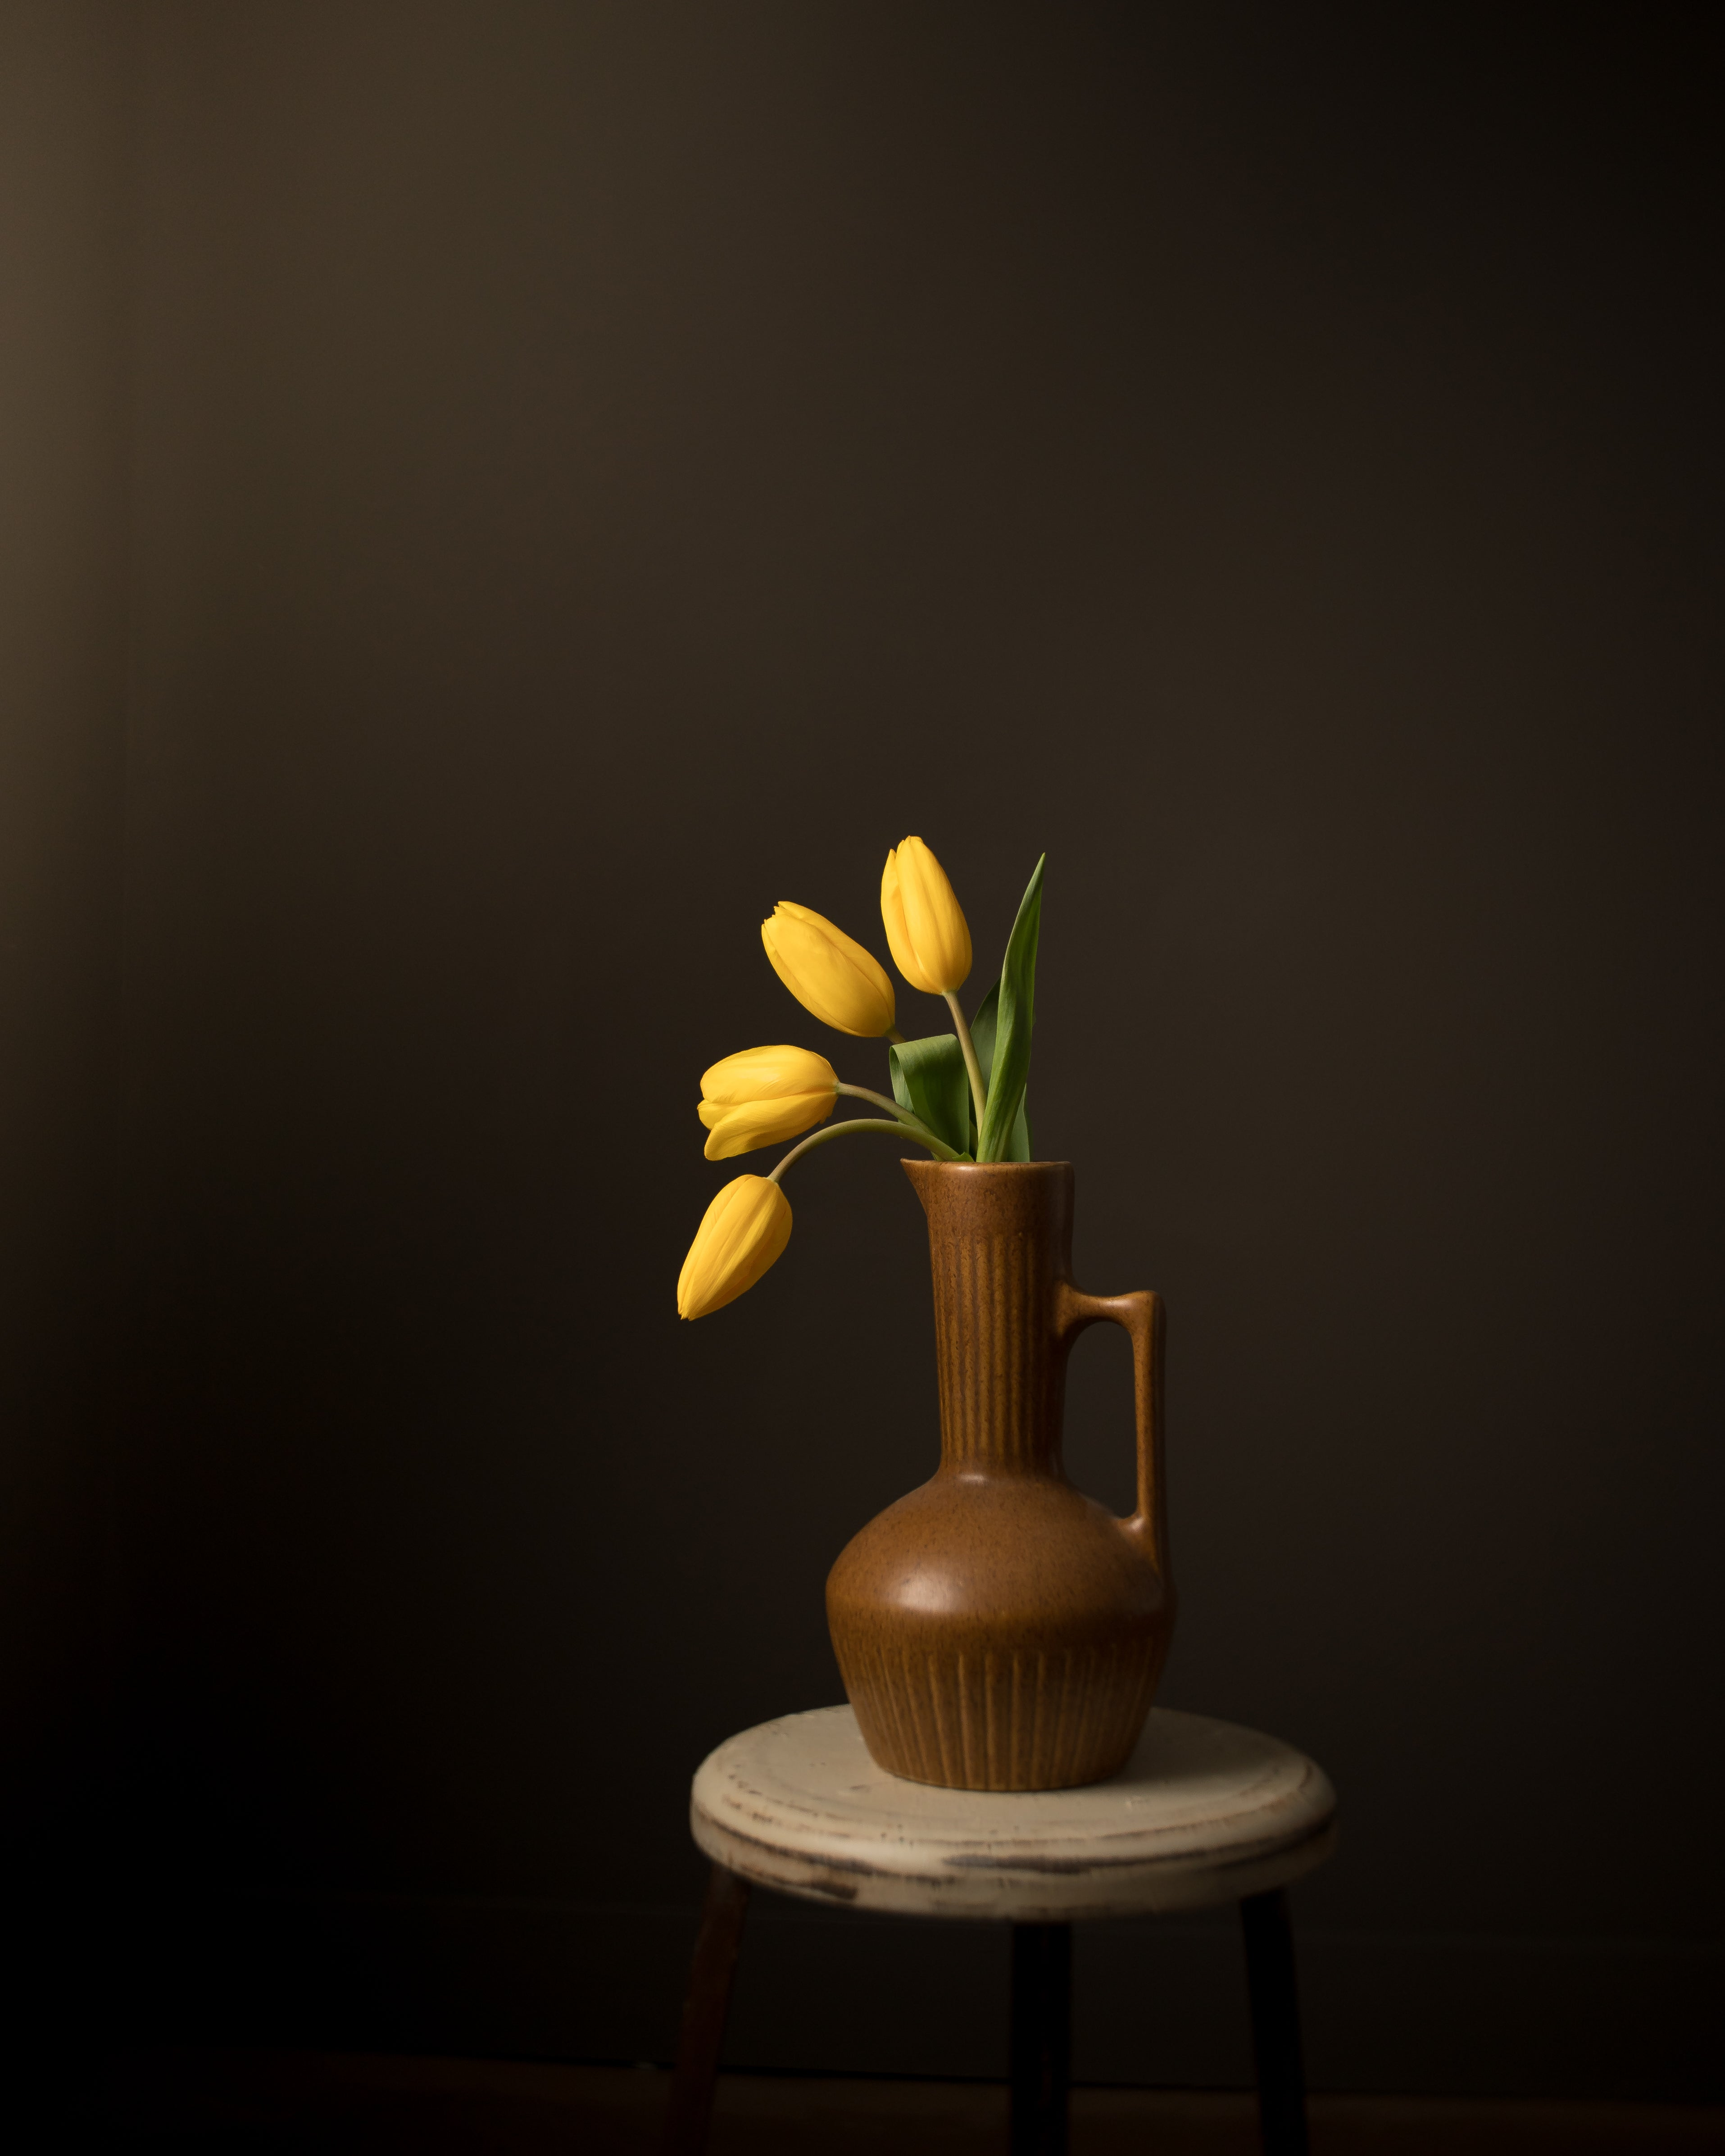 yellow tulips curving out of a brown vase bright yellow caroline jensen burnside 35